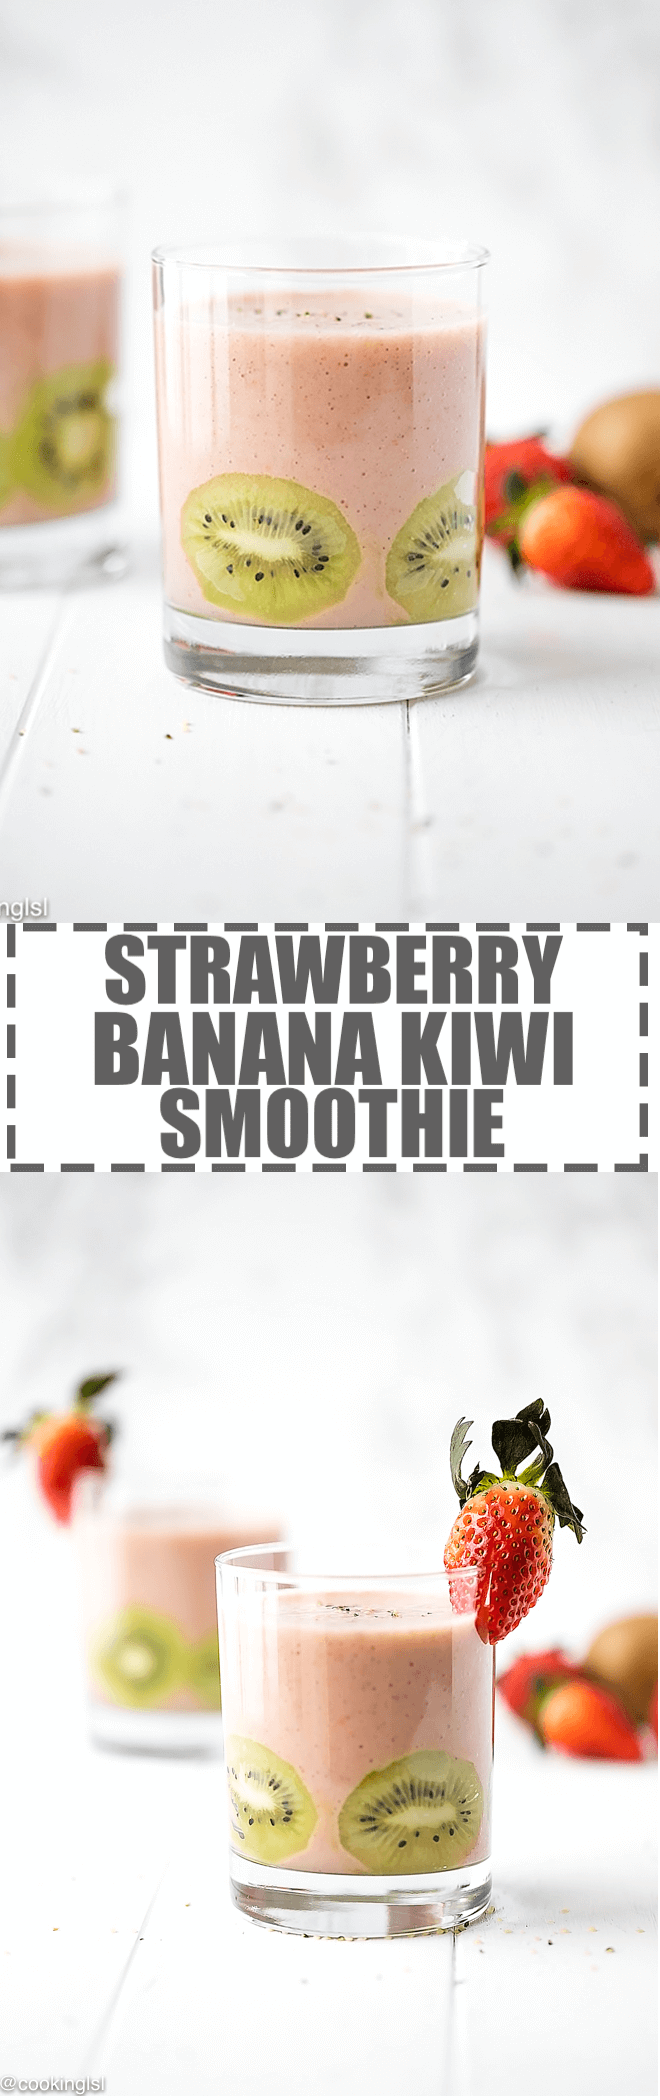 Strawberry, Banana and Kiwi Smoothie - light, creamy, flavorful and nutritious, great for a fresh, healthy snack. Ready in 2 minutes, packed with vitamins.